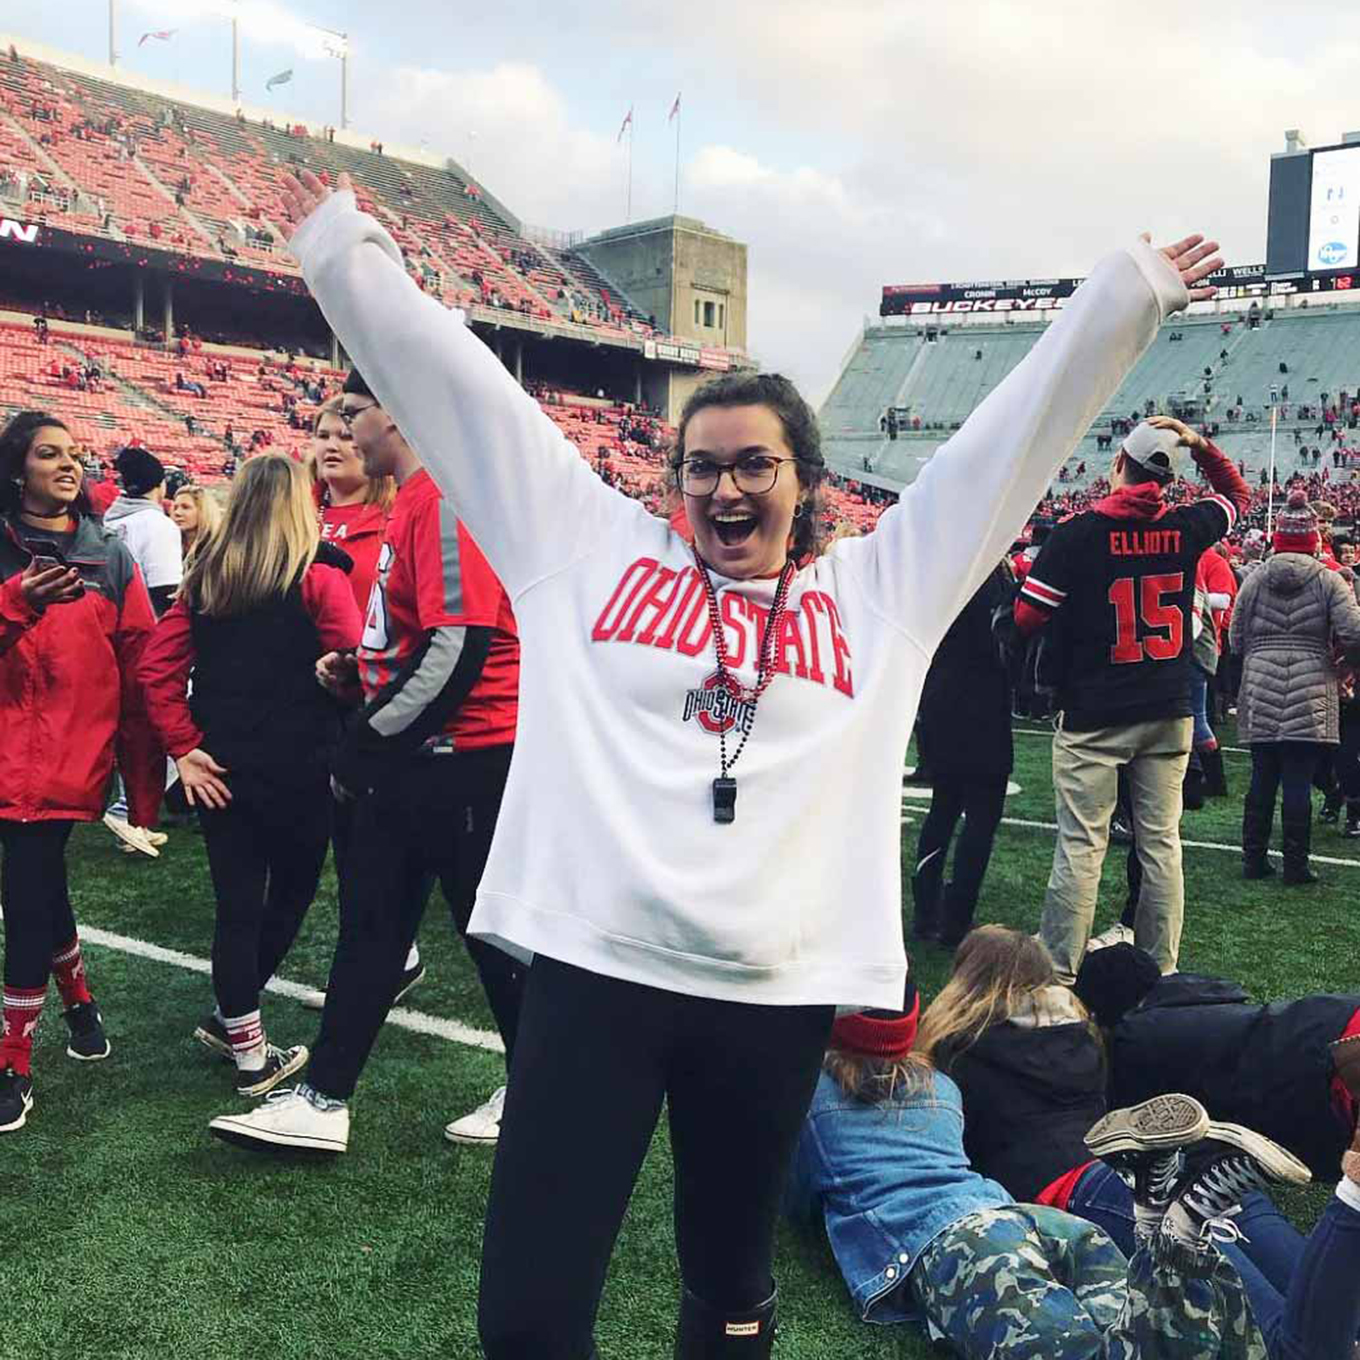 A young woman celebrates an OSU Football victory from the middle of the field.